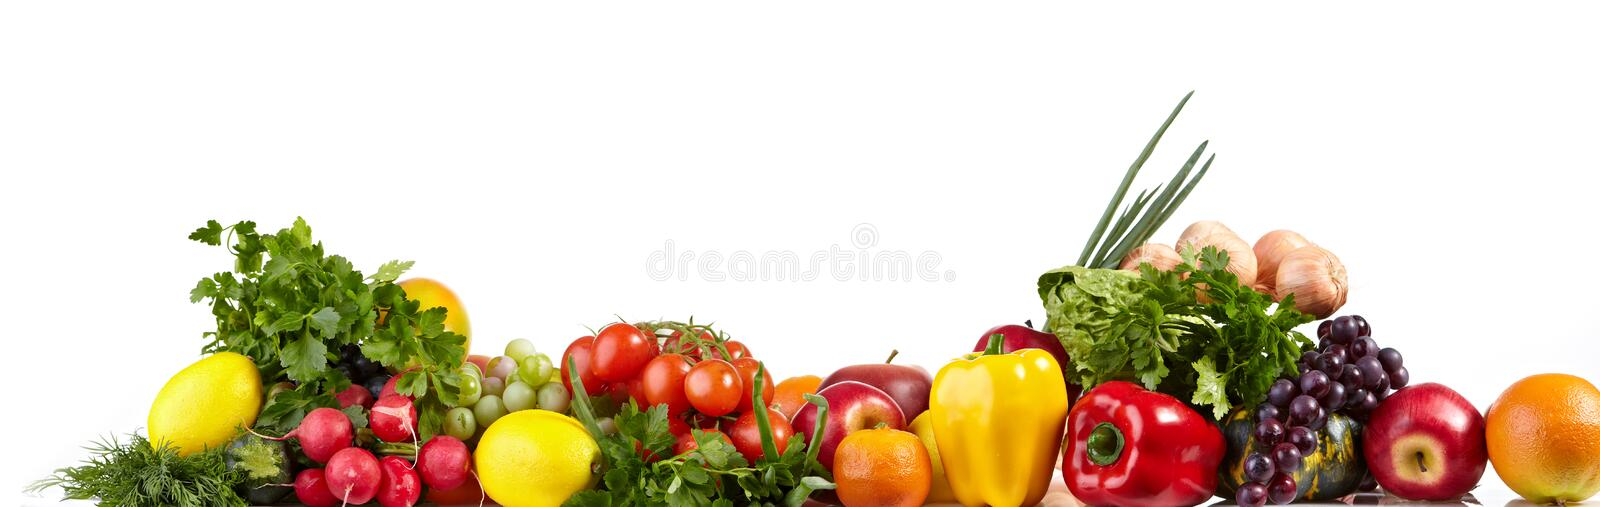 Fruit and vegetable borders stock images